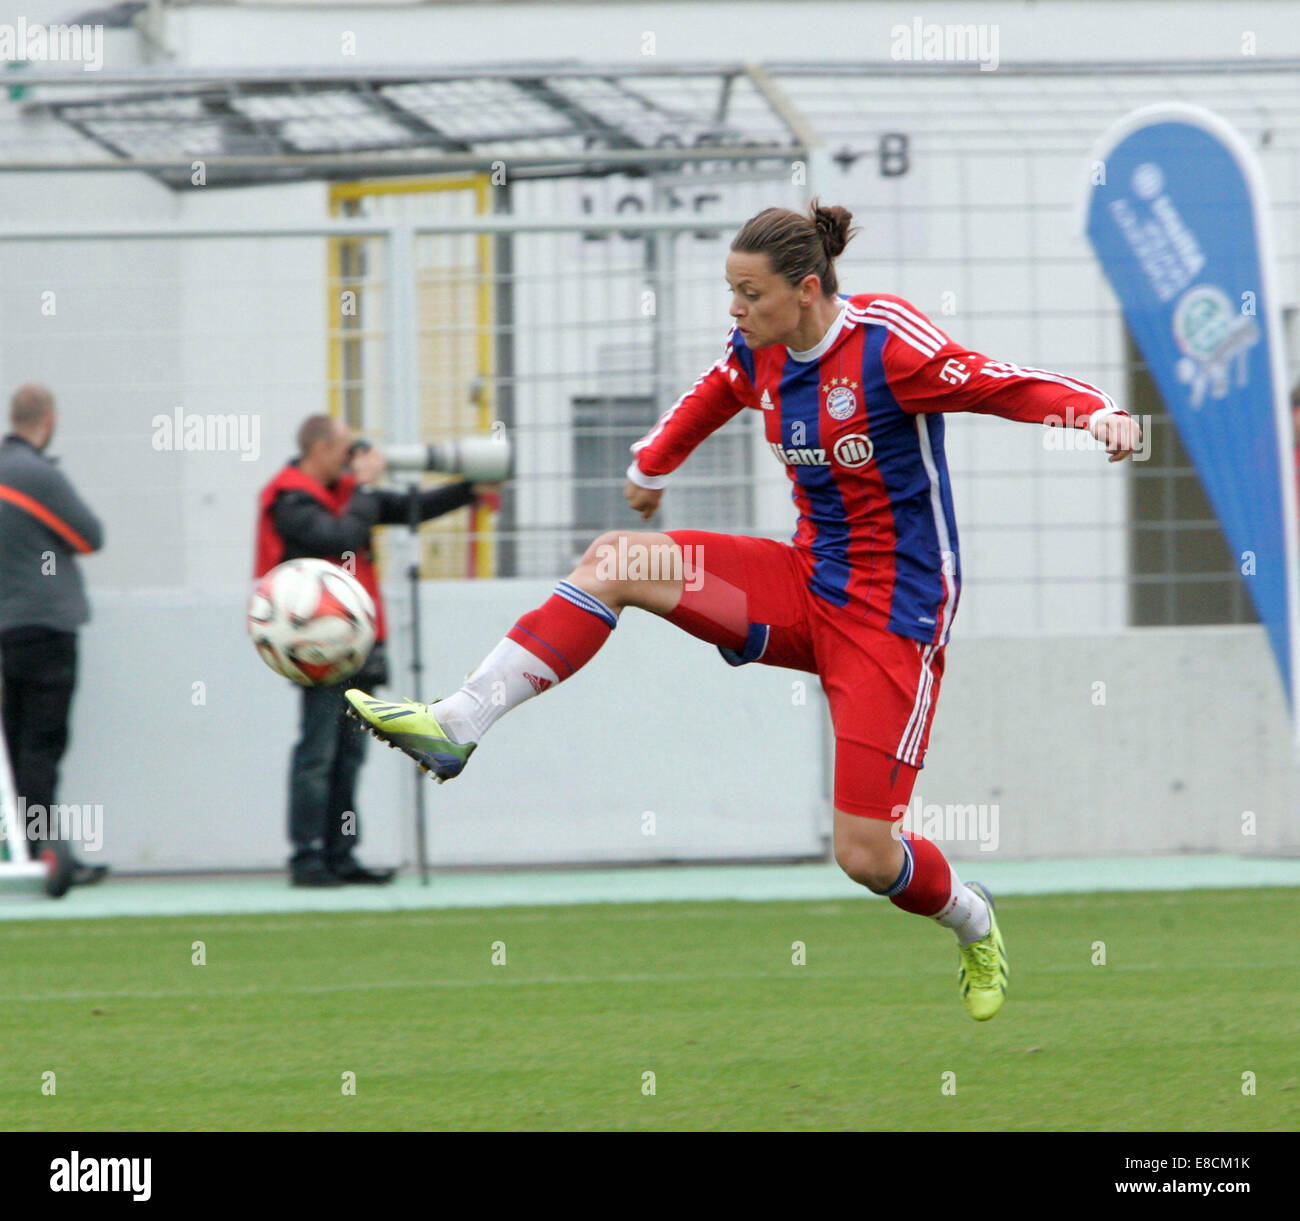 Muenchen, Bavaria, Germany. 5th Oct, 2014. 15 Nora HOLSTAD/NOR/Muenchen, .German woman soccer league, FC Bayern - Stock Image